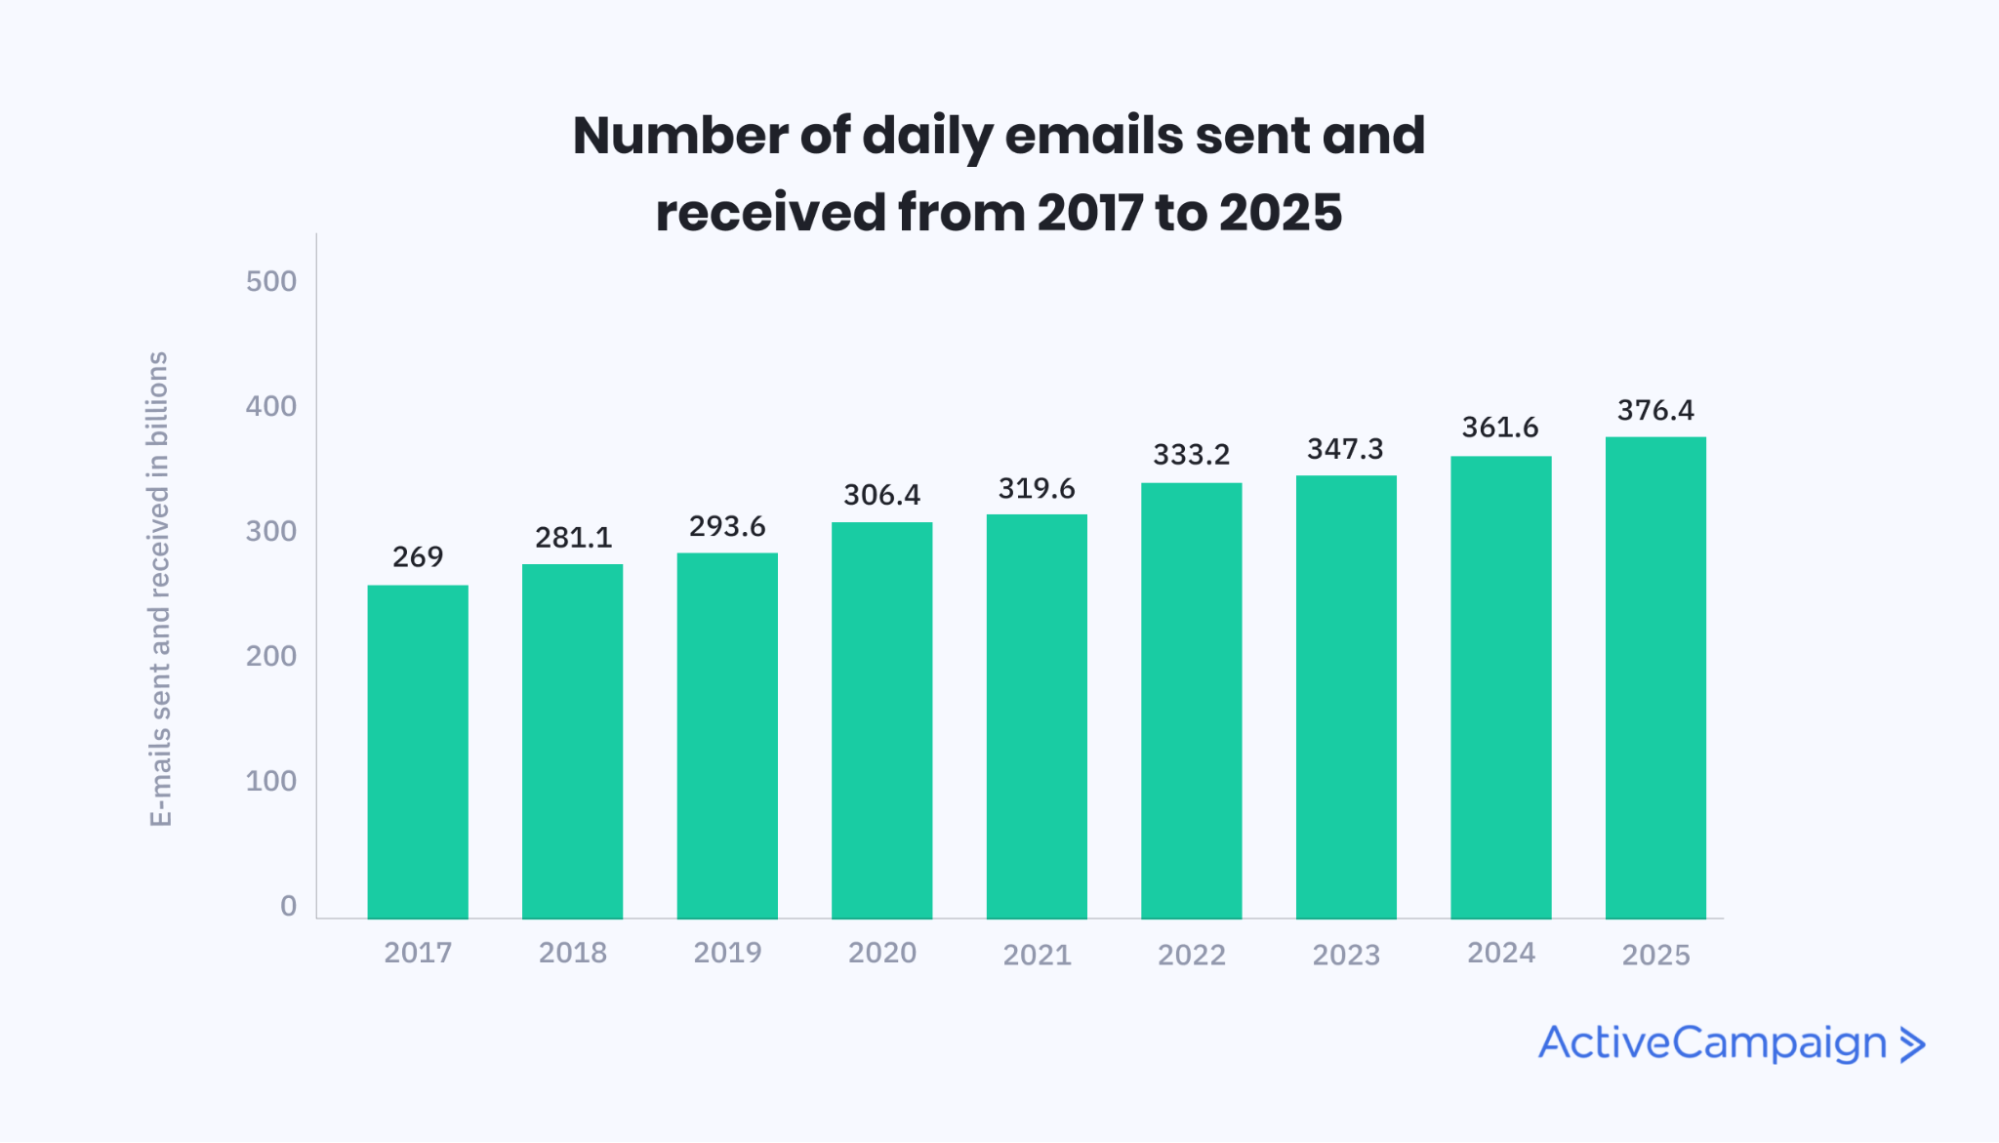 Graph from Statista outlining the number of daily emails sent and received from 2017 to 2025